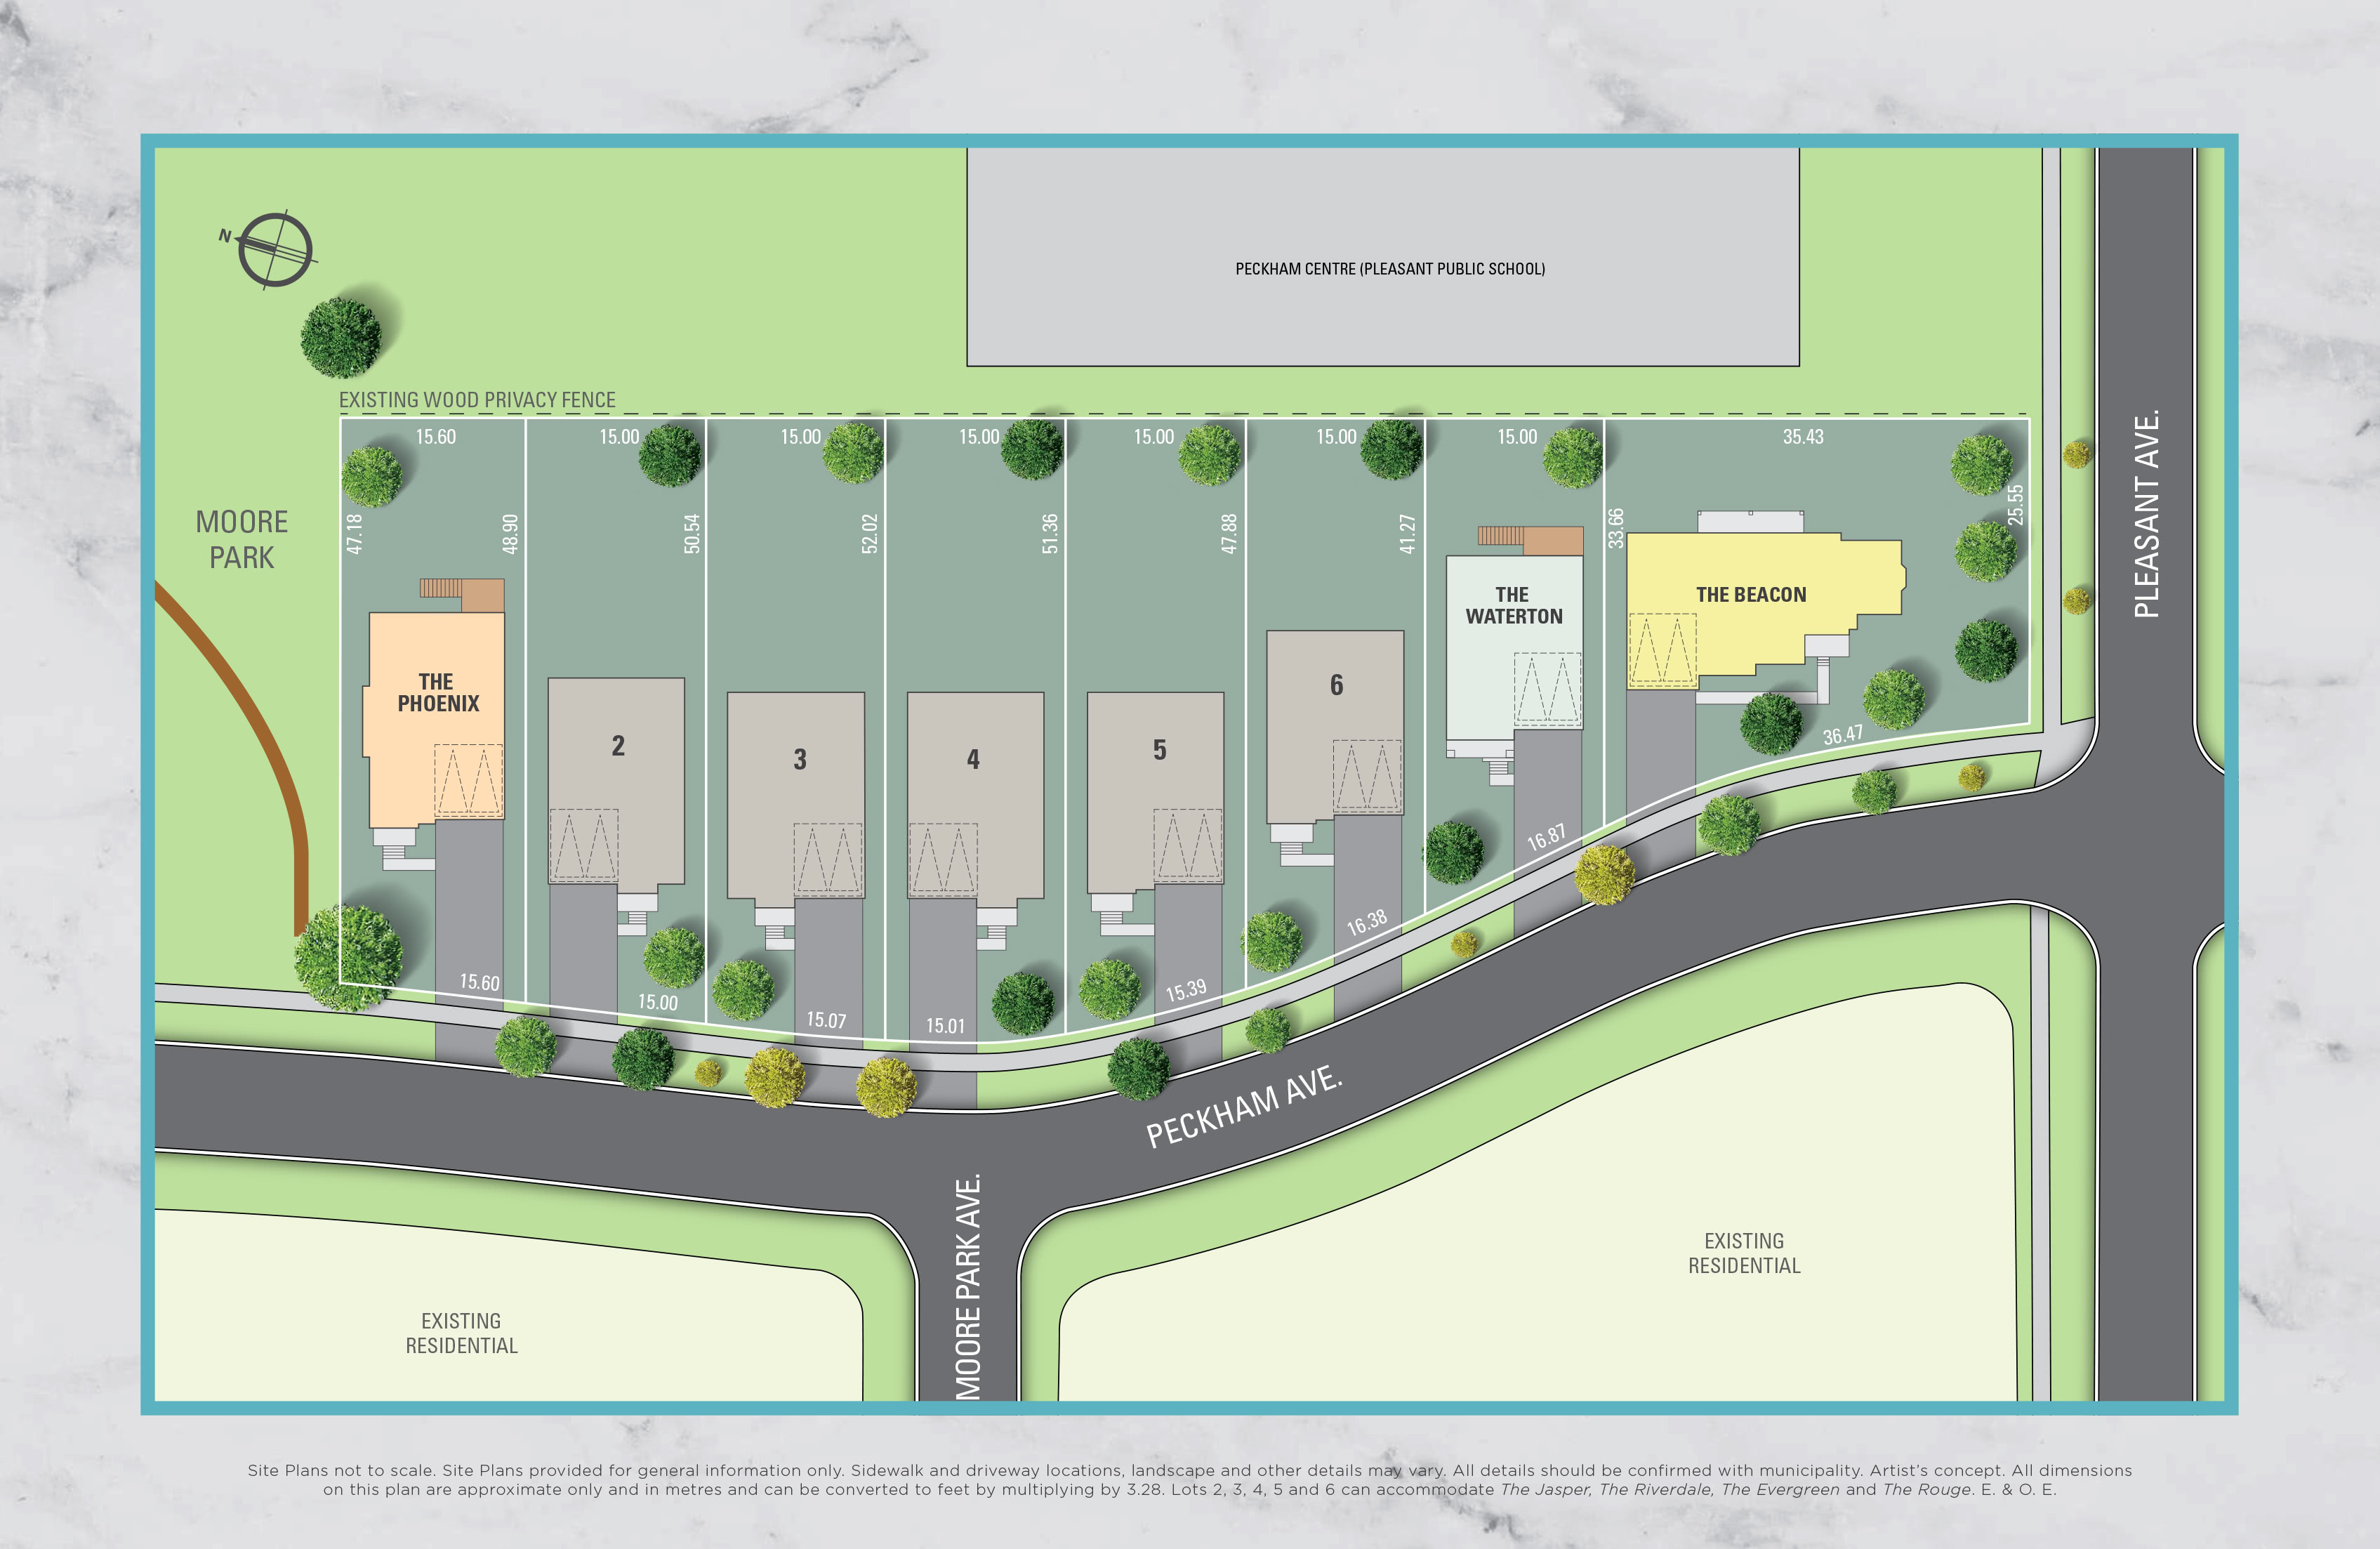 Moore Park Place Siteplan in North York